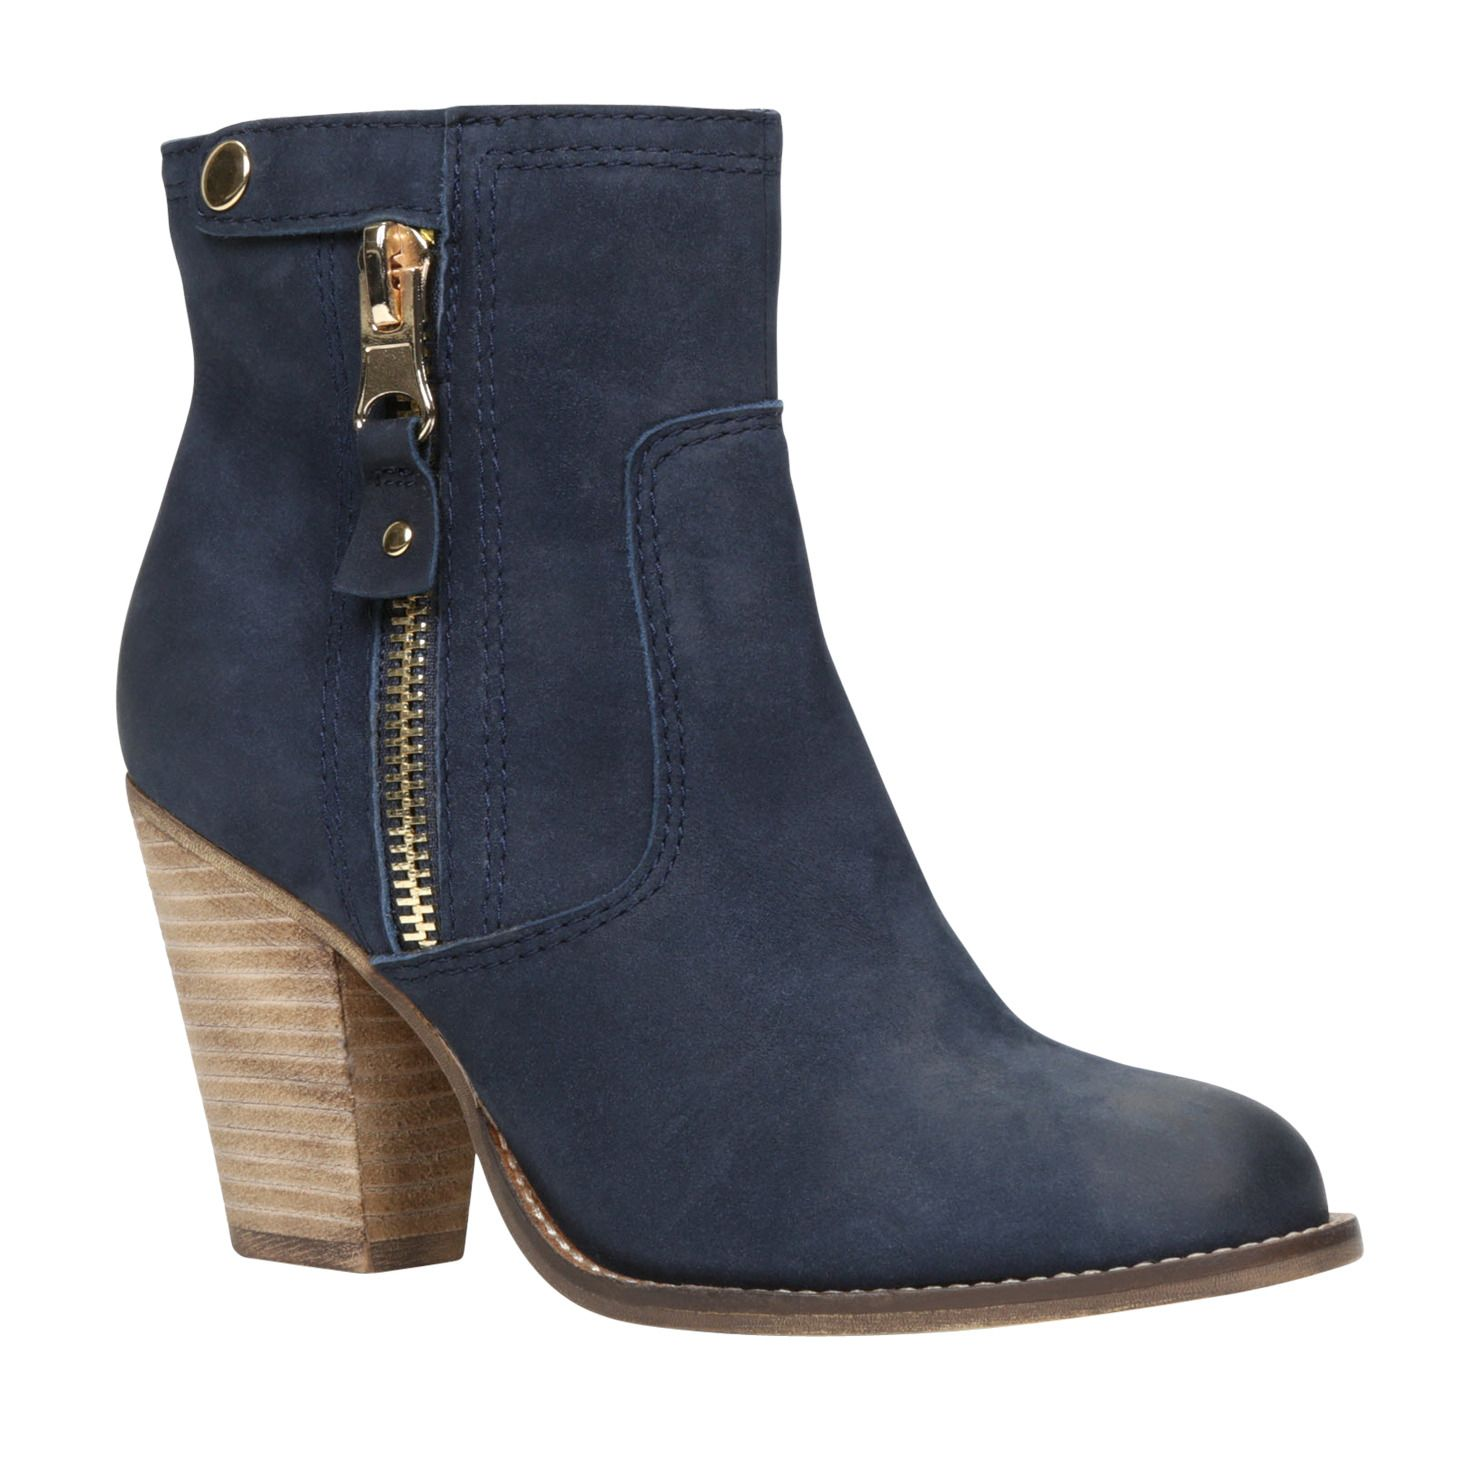 f38d23647a4f OLENALLA - women s ankle boots boots for sale at ALDO Shoes.